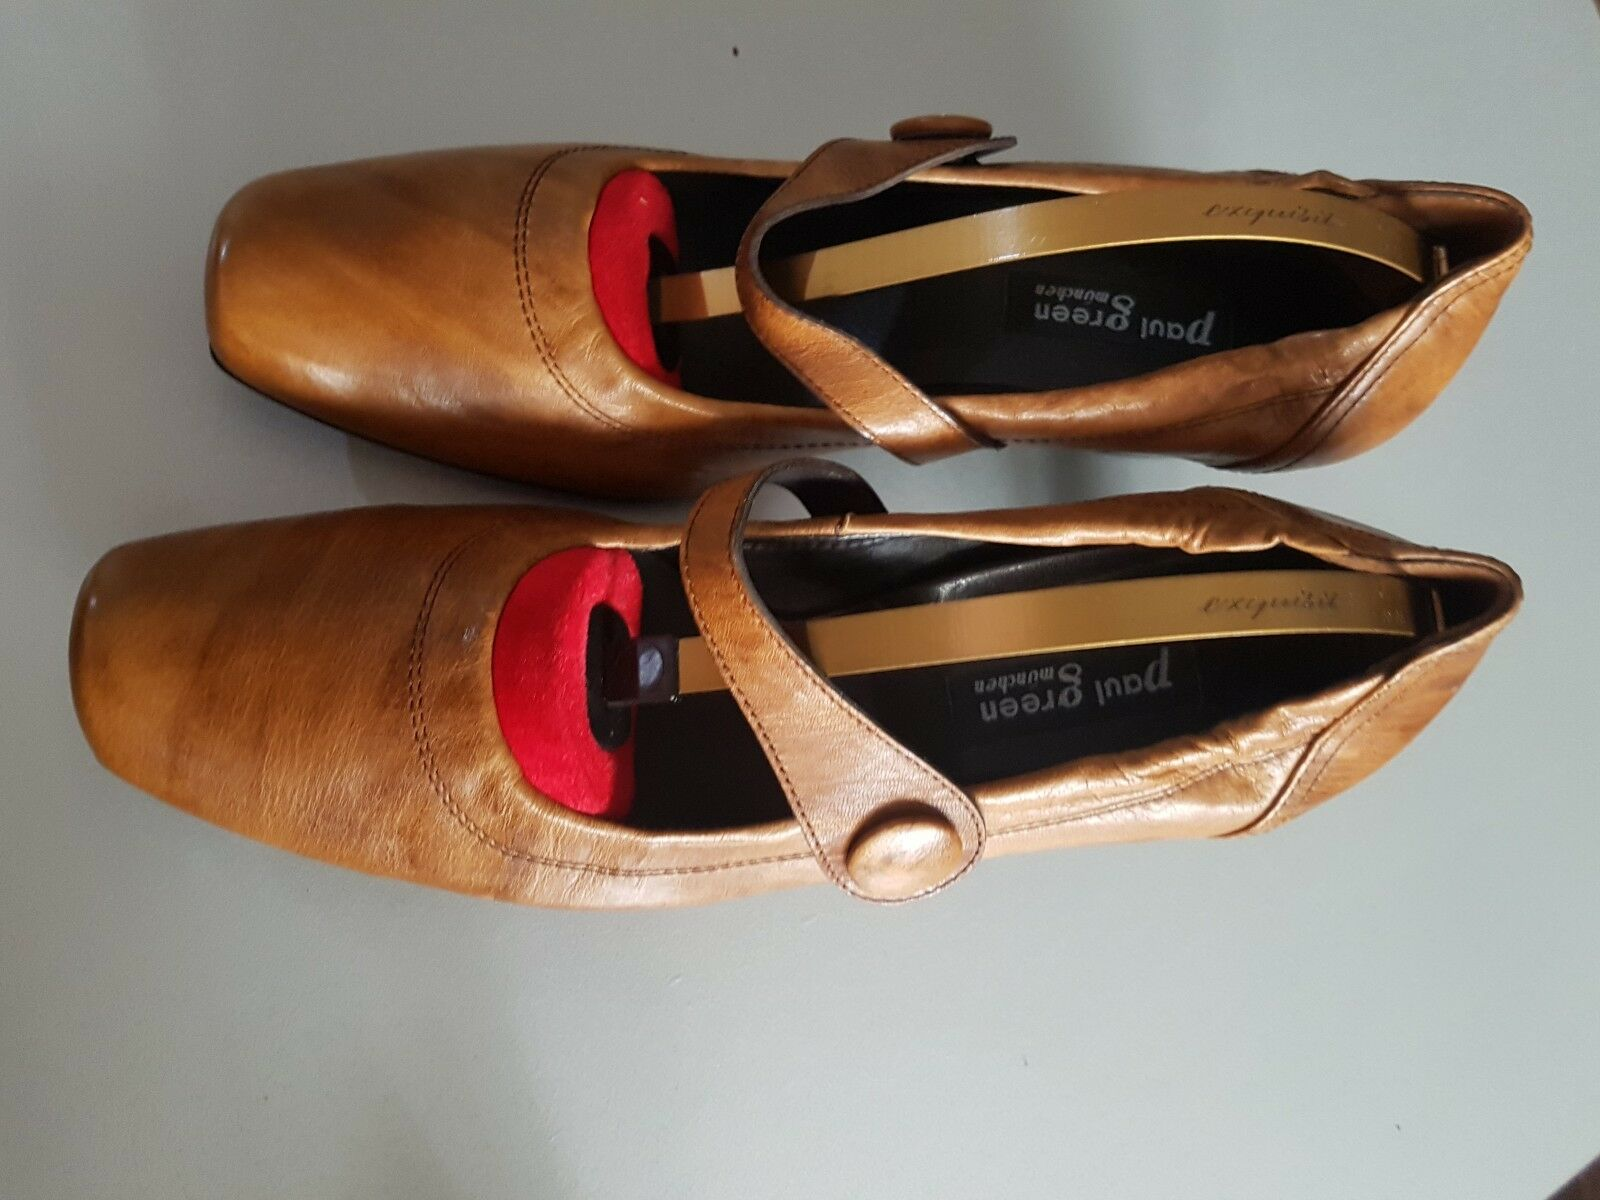 Paul Grün Pumps 6 Damenschuhe Sandalen Leder braun Gr 6 Pumps / 39.5 TOP aea79b